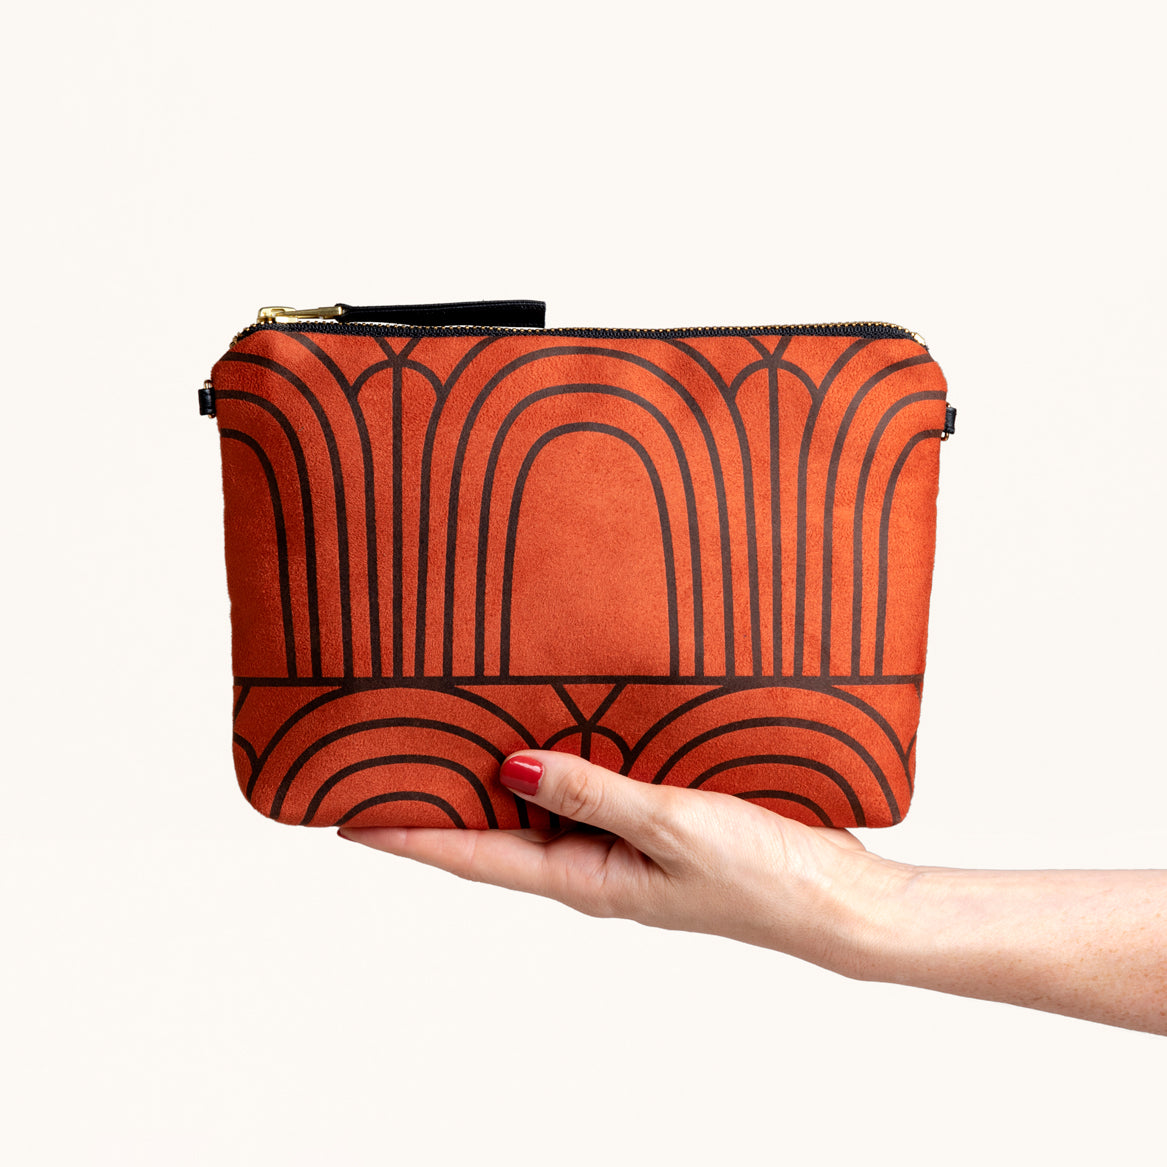 Art Deco Arches Print Clutch Purse by Lee Coren